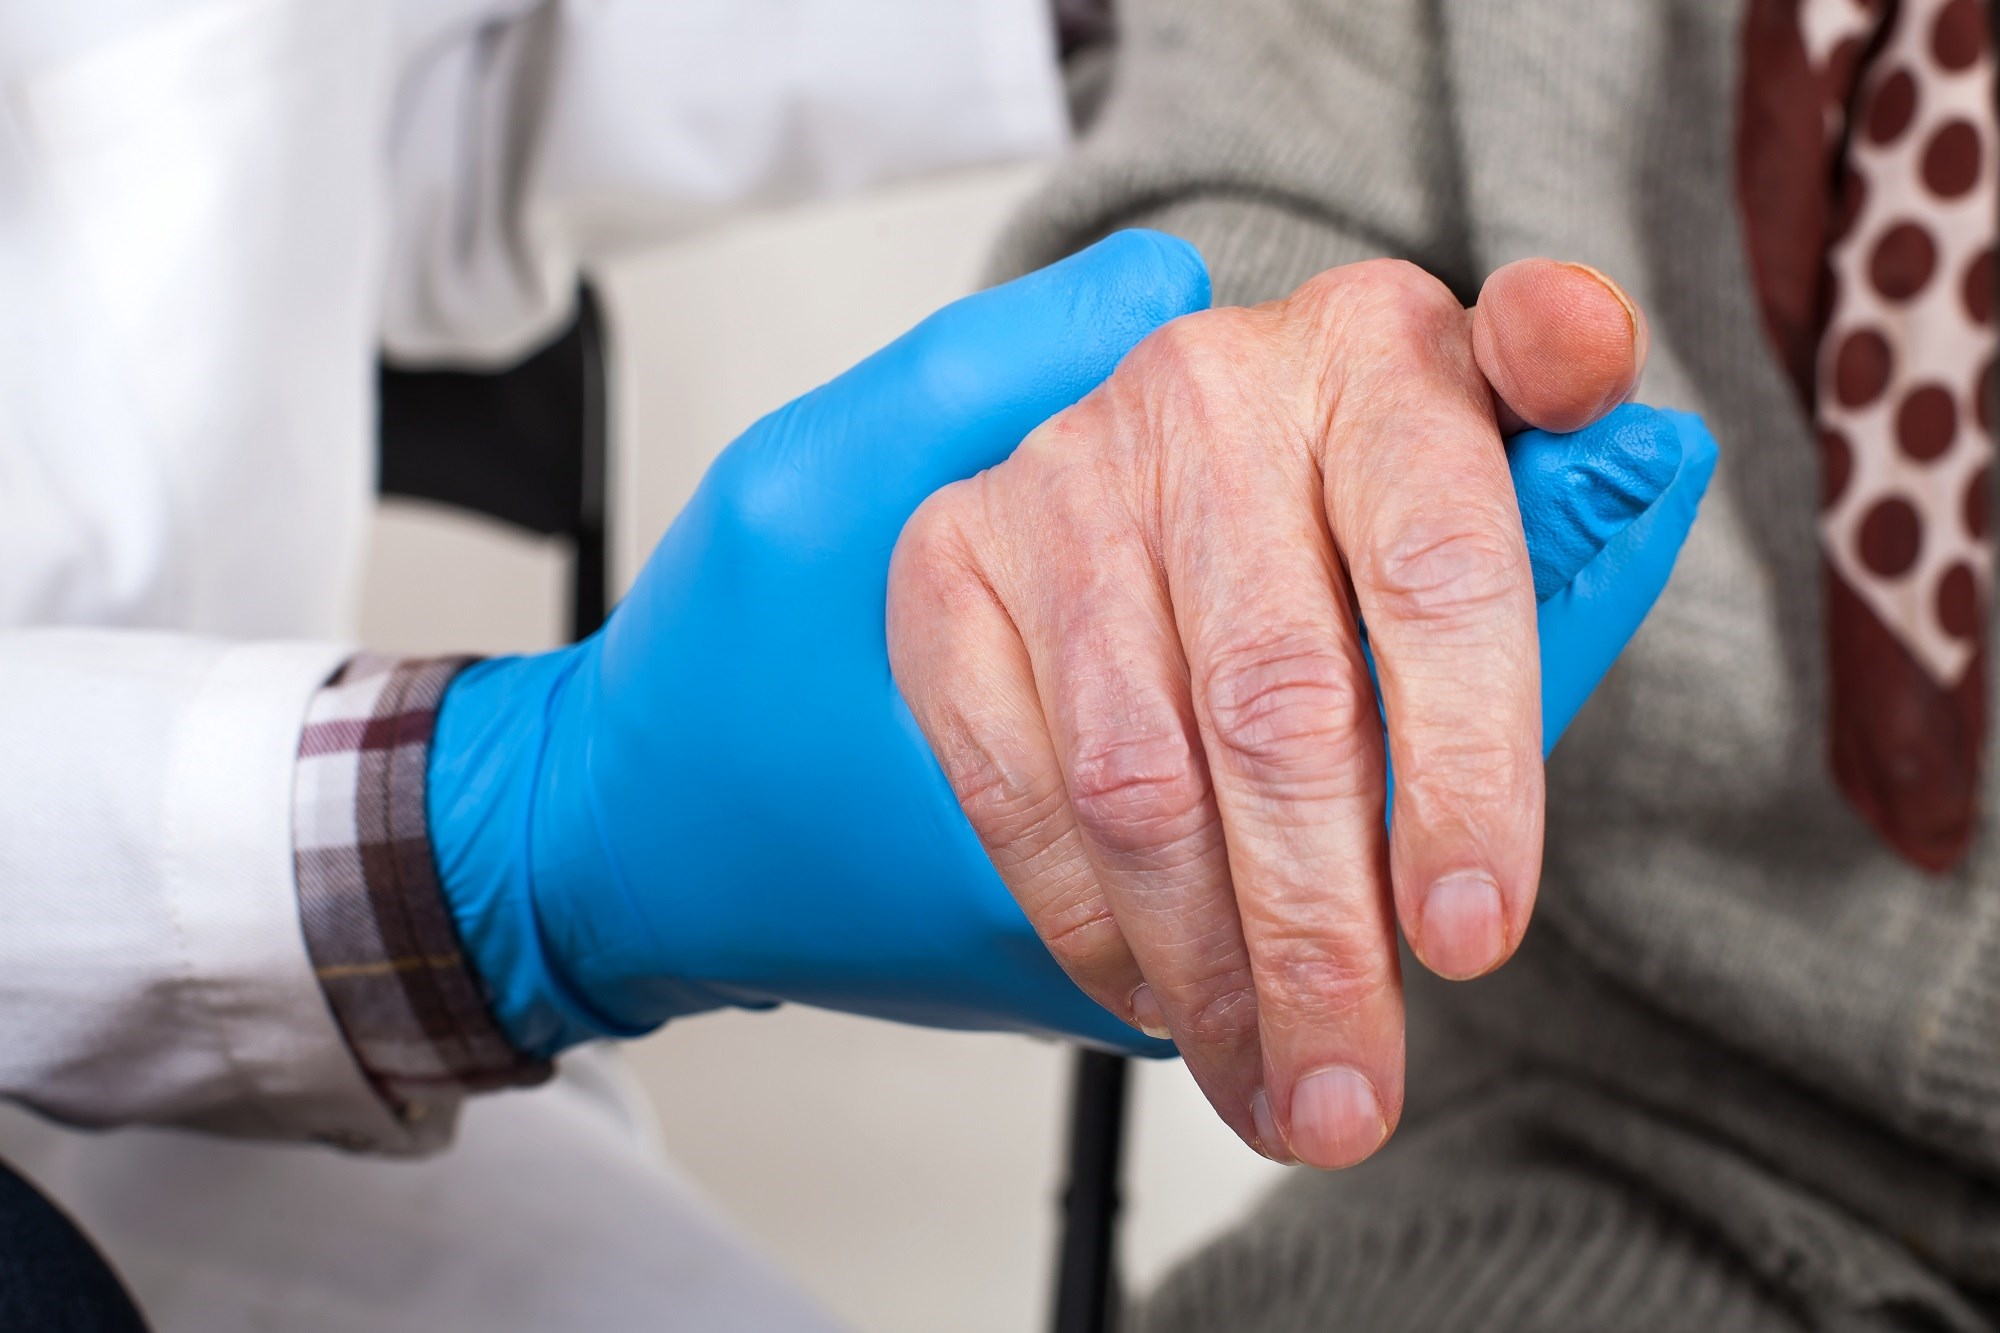 Validity of Self-Reported Essential Tremor Cases Evaluated